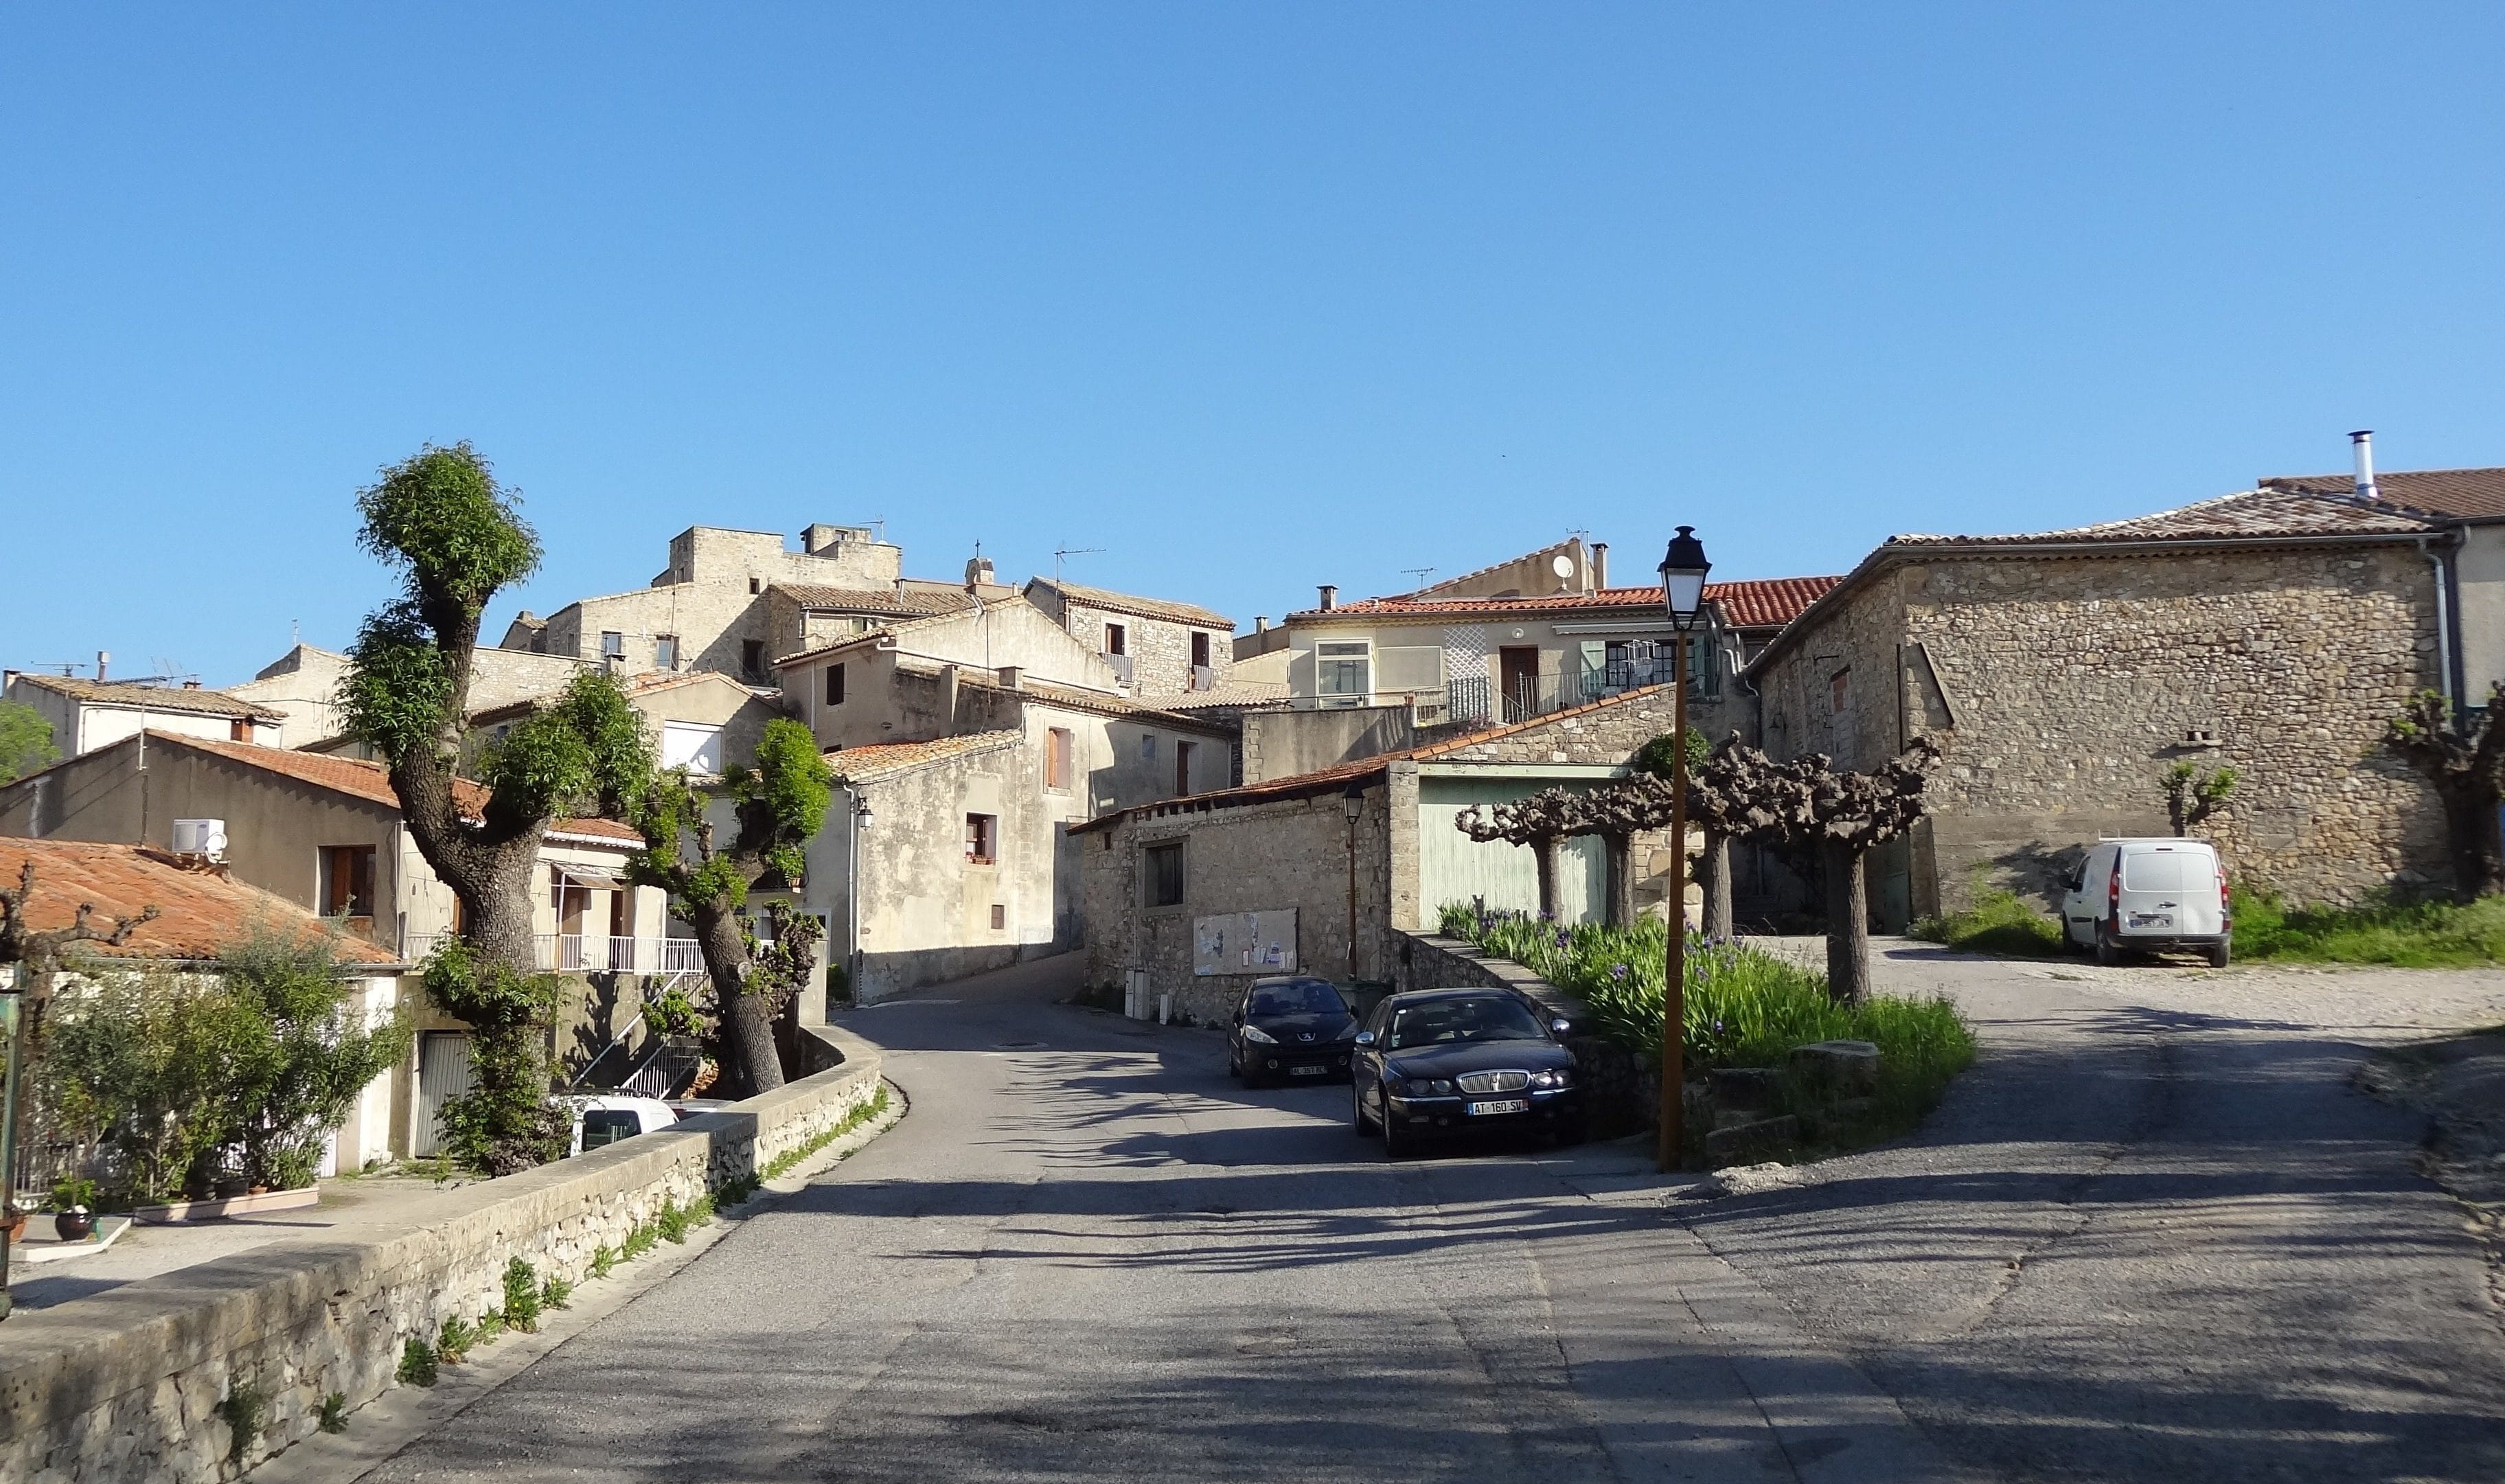 Le village de Saint-Vincent-de-Barbeyrargues. Photo : Christophe Colrat